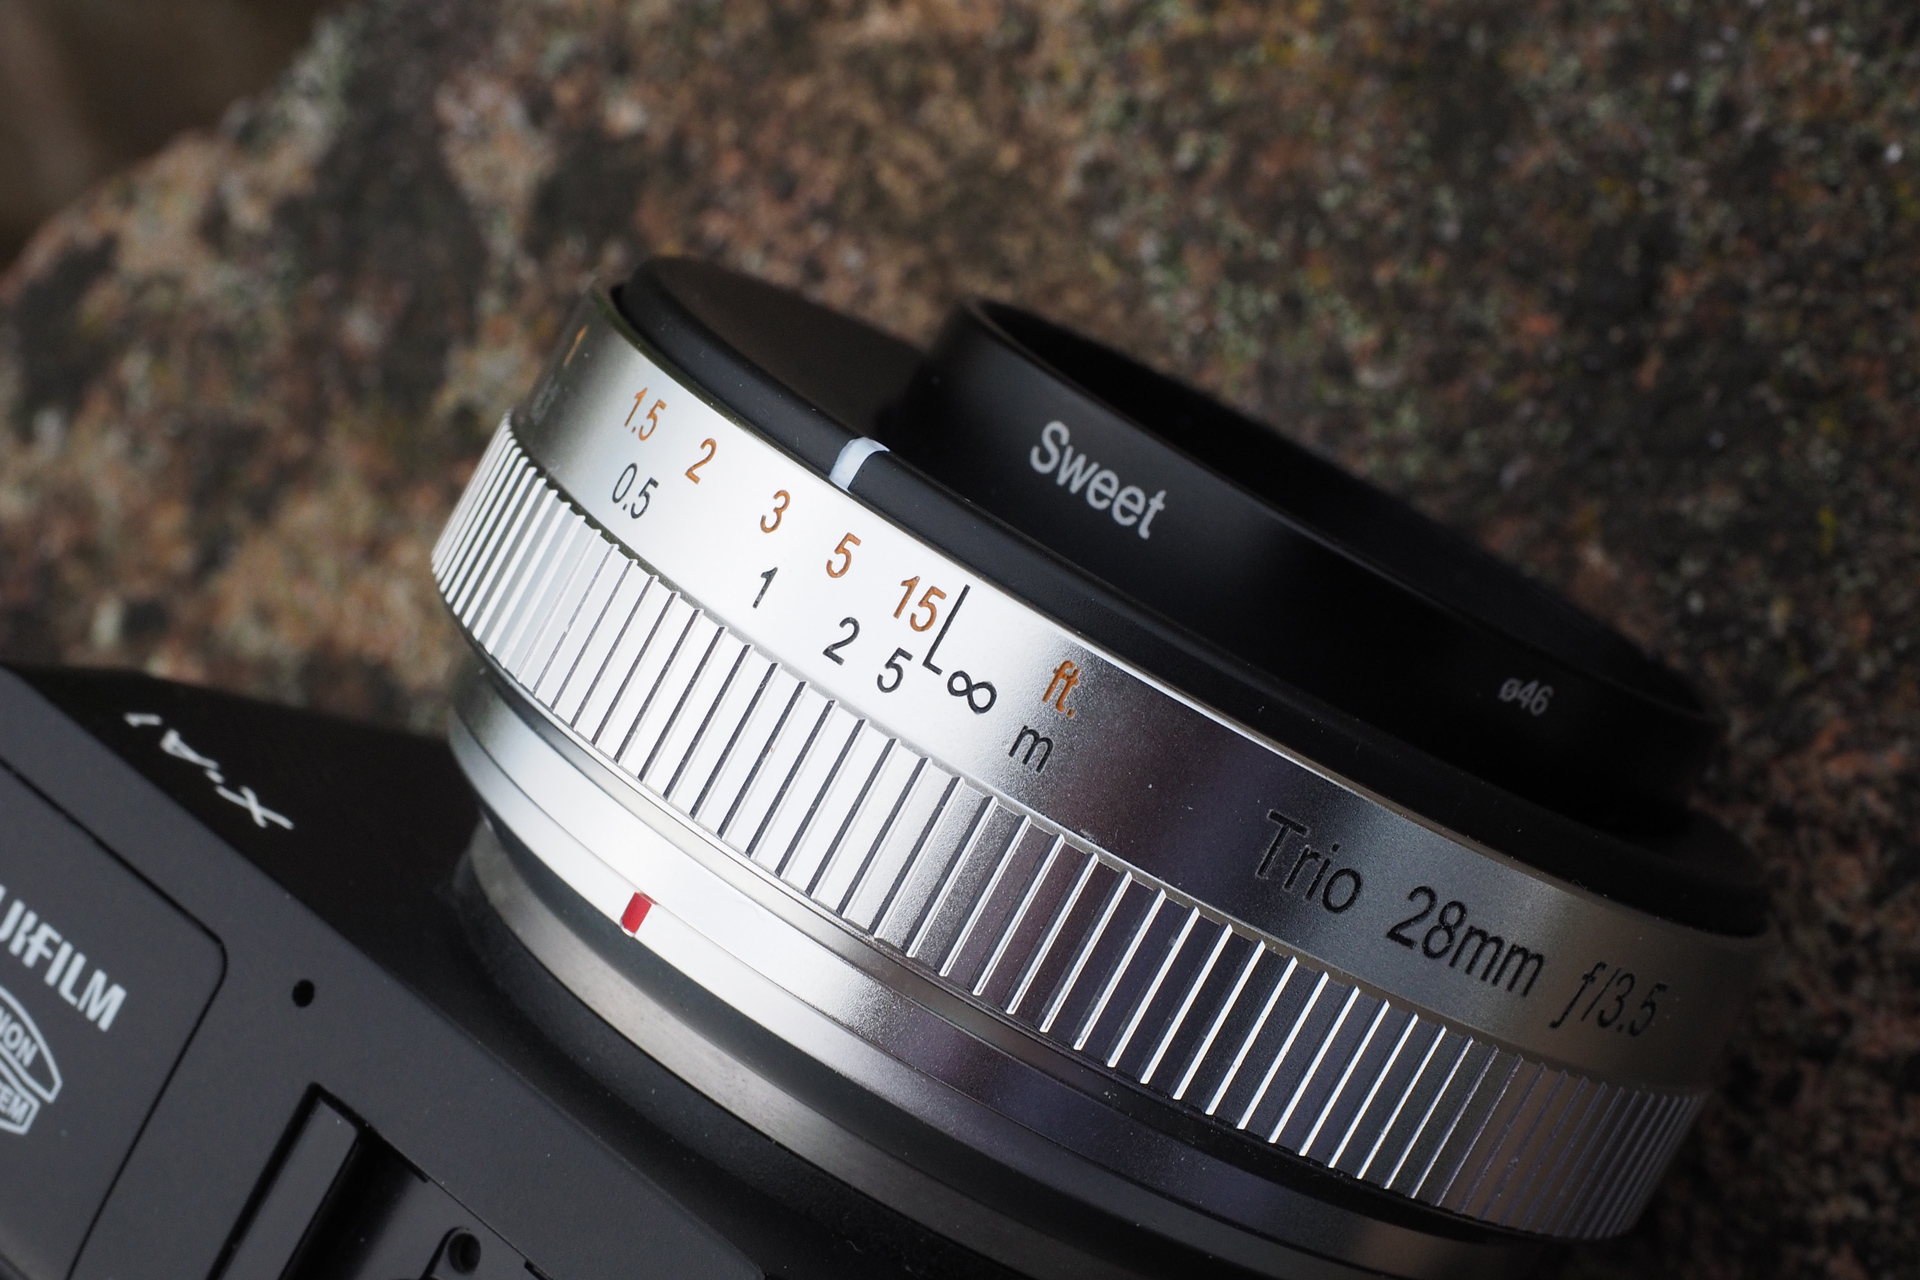 Lensbaby Trio 28 review